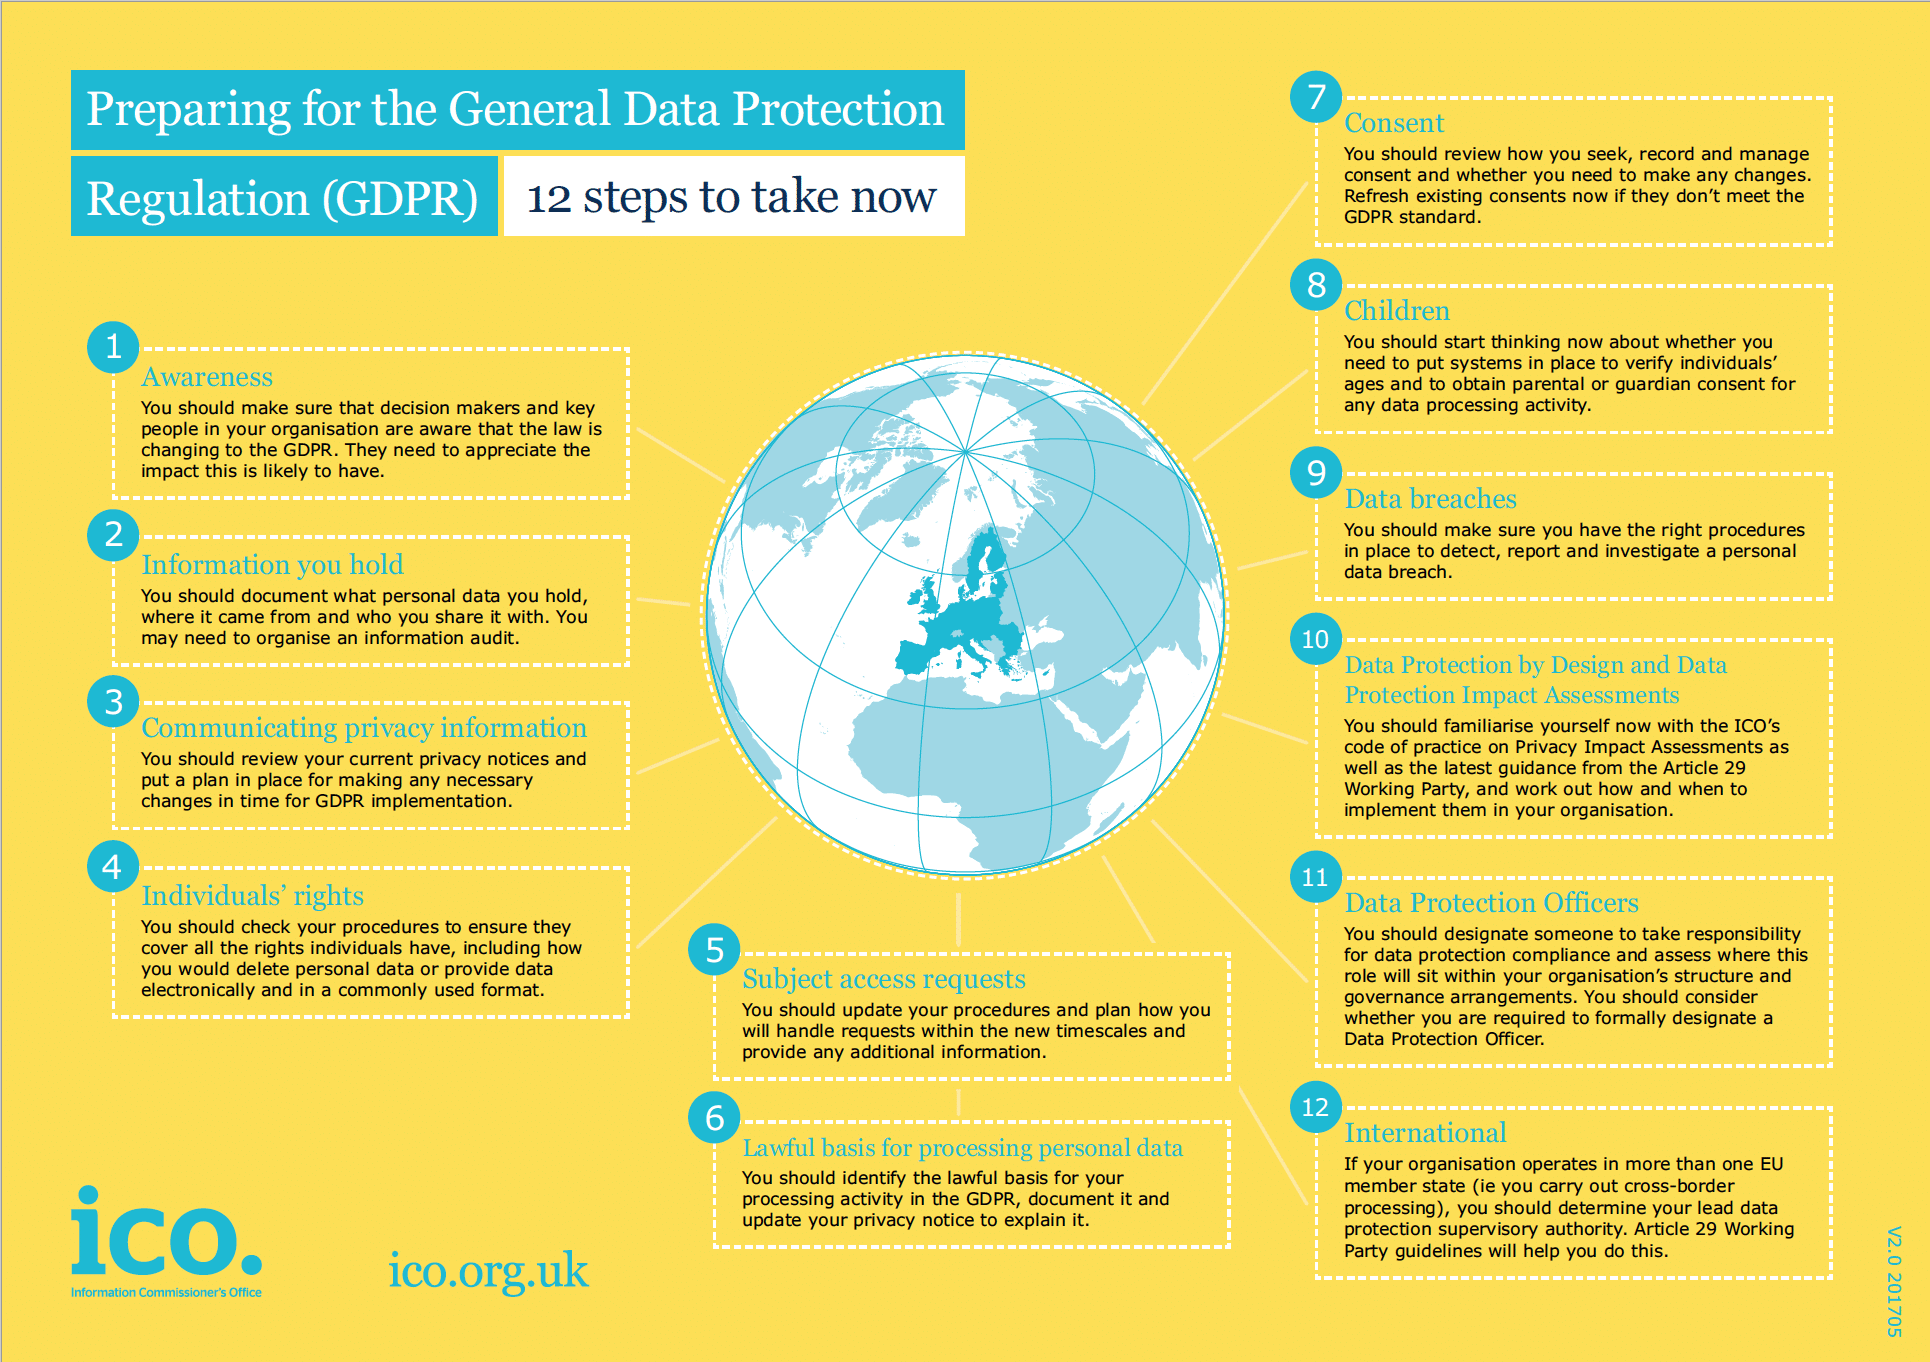 ICO 12-step guide for businesses on how to meet GDPR regulations